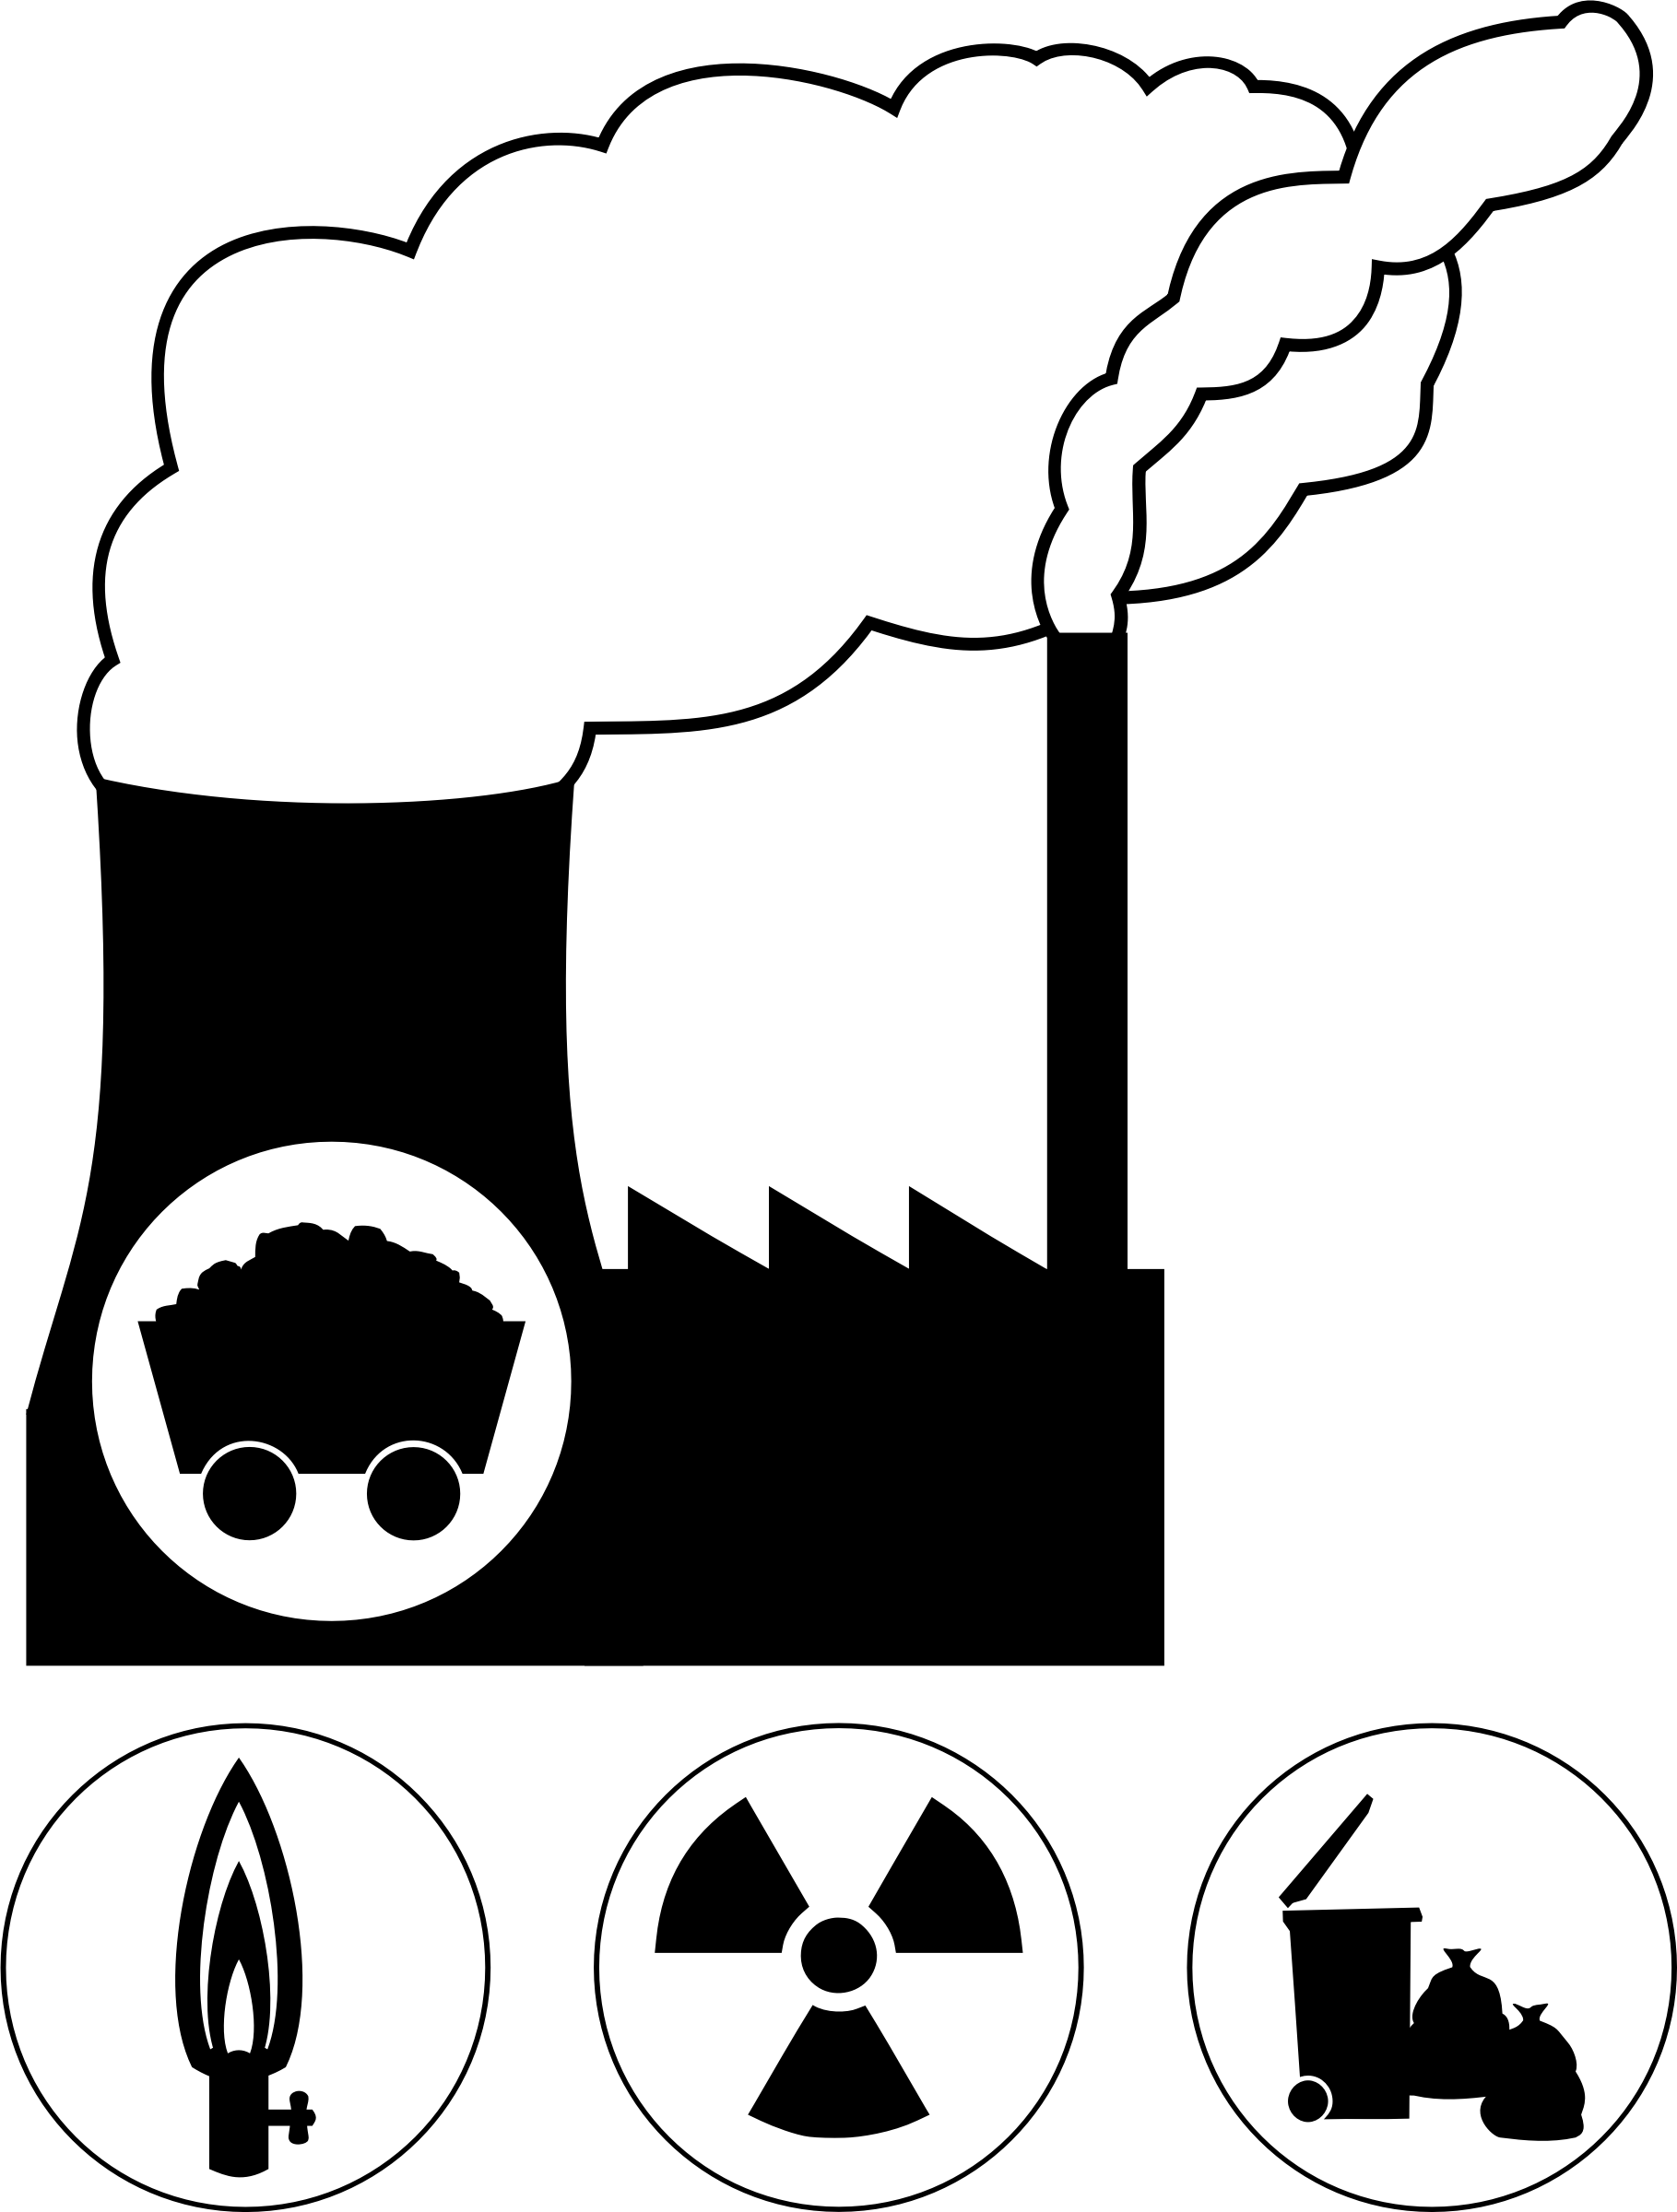 Coal clipart energy crisis. Cliparts for free